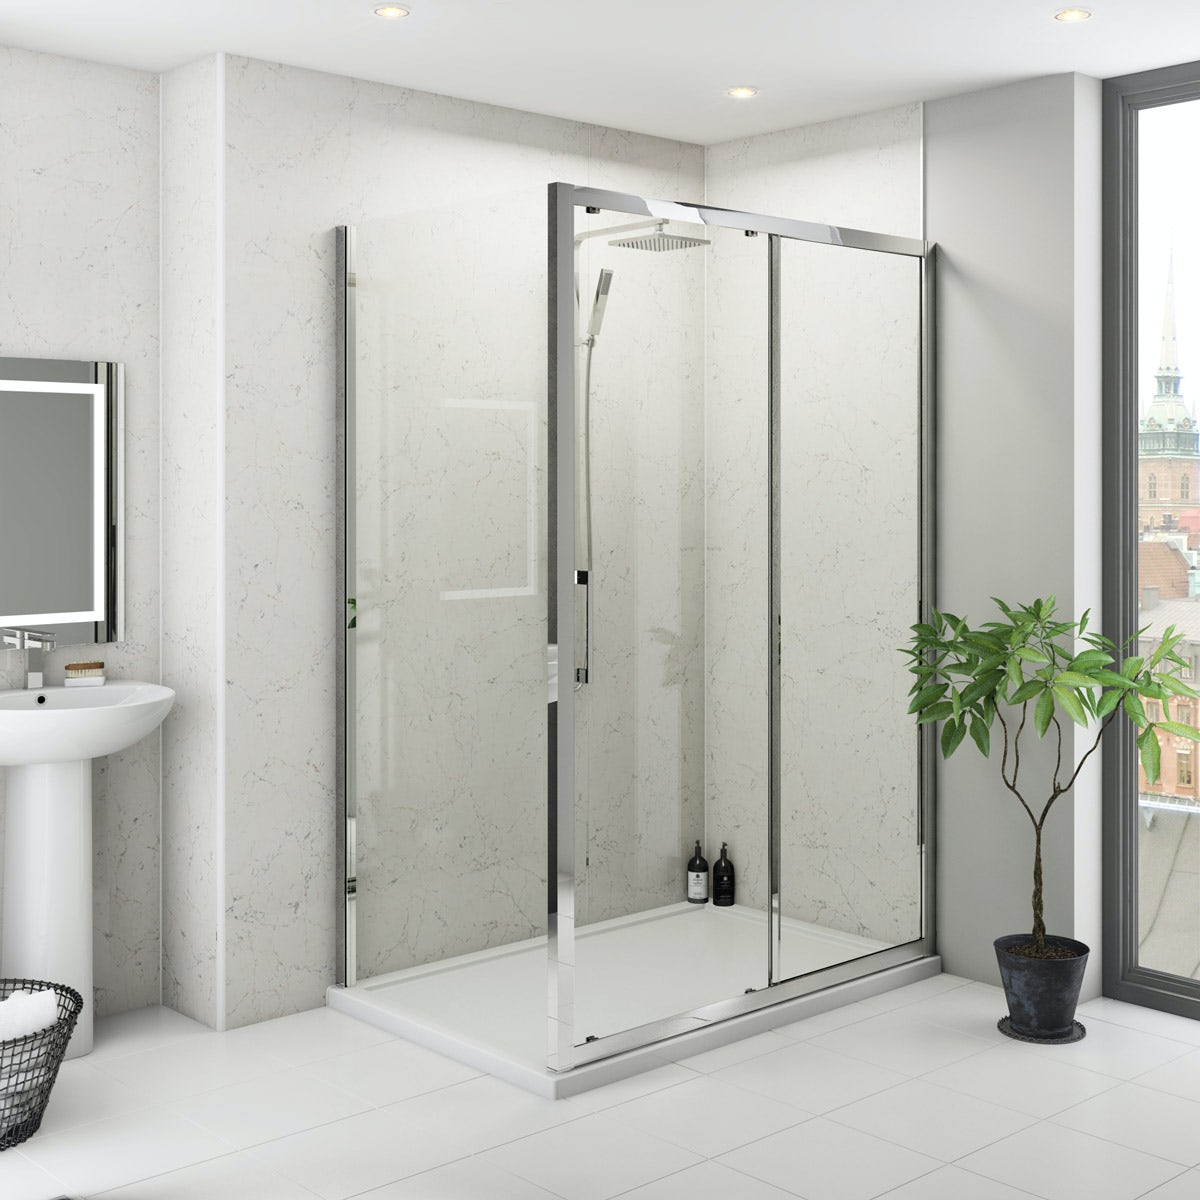 Multipanel Classic Marble Hydrolock shower wall panel 598